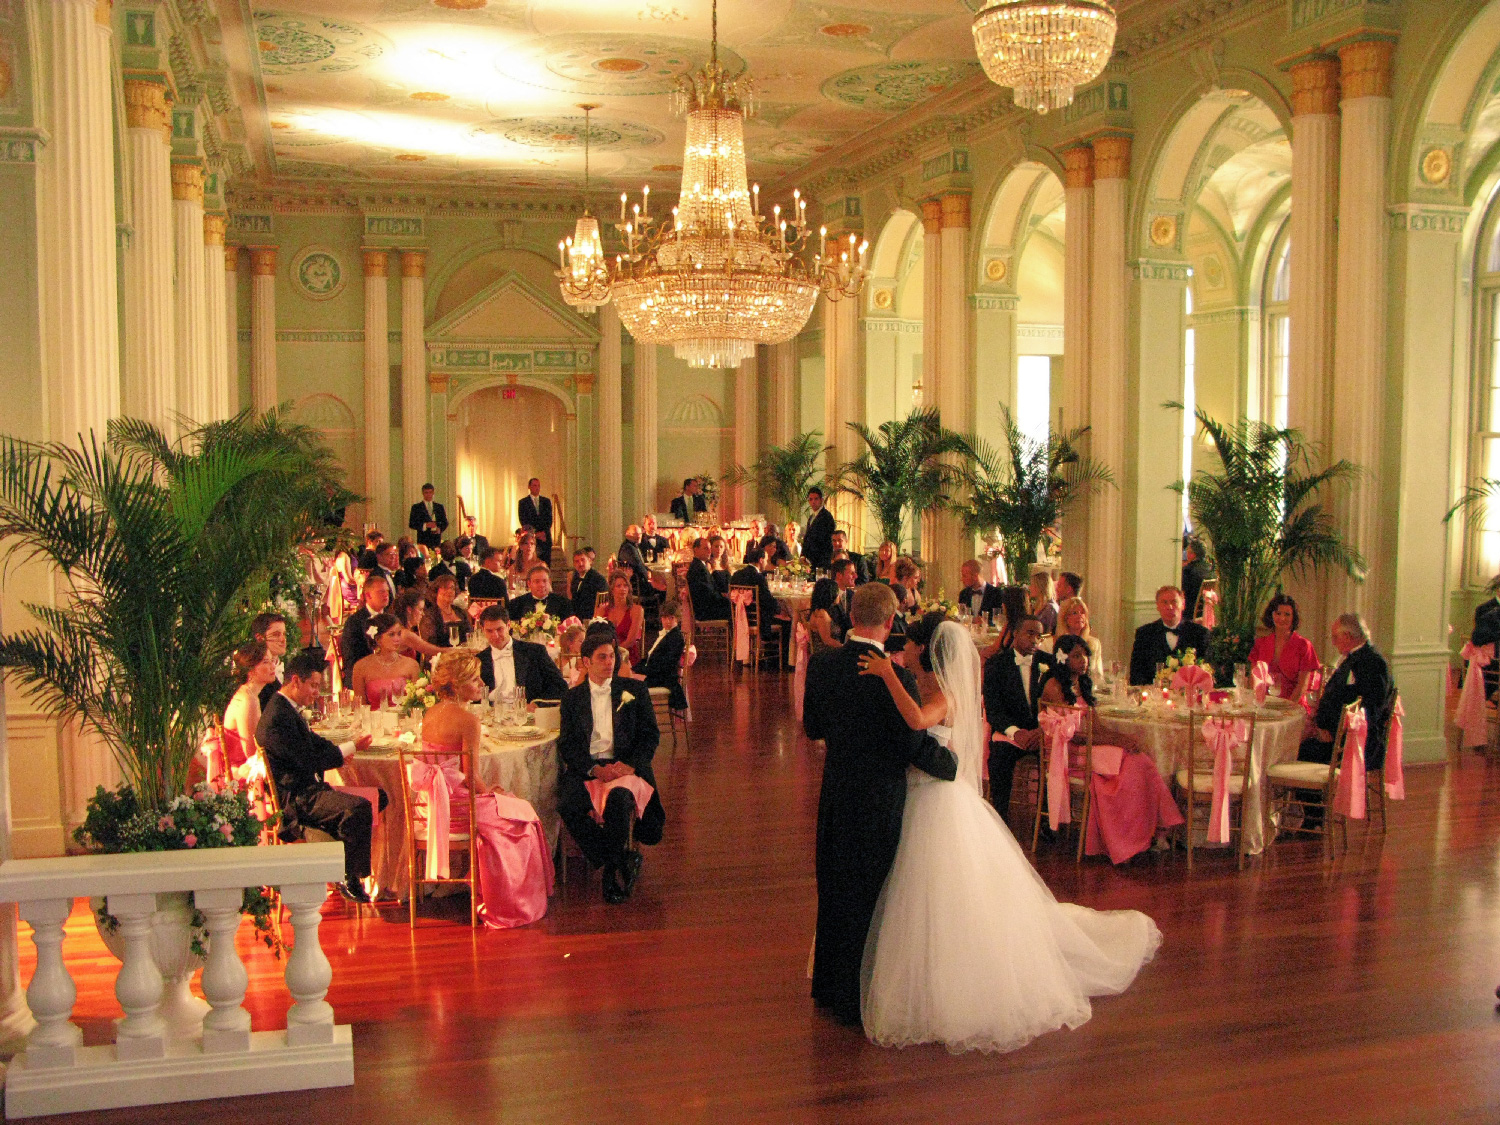 Wedding banquet at the Biltmore in Atlanta.